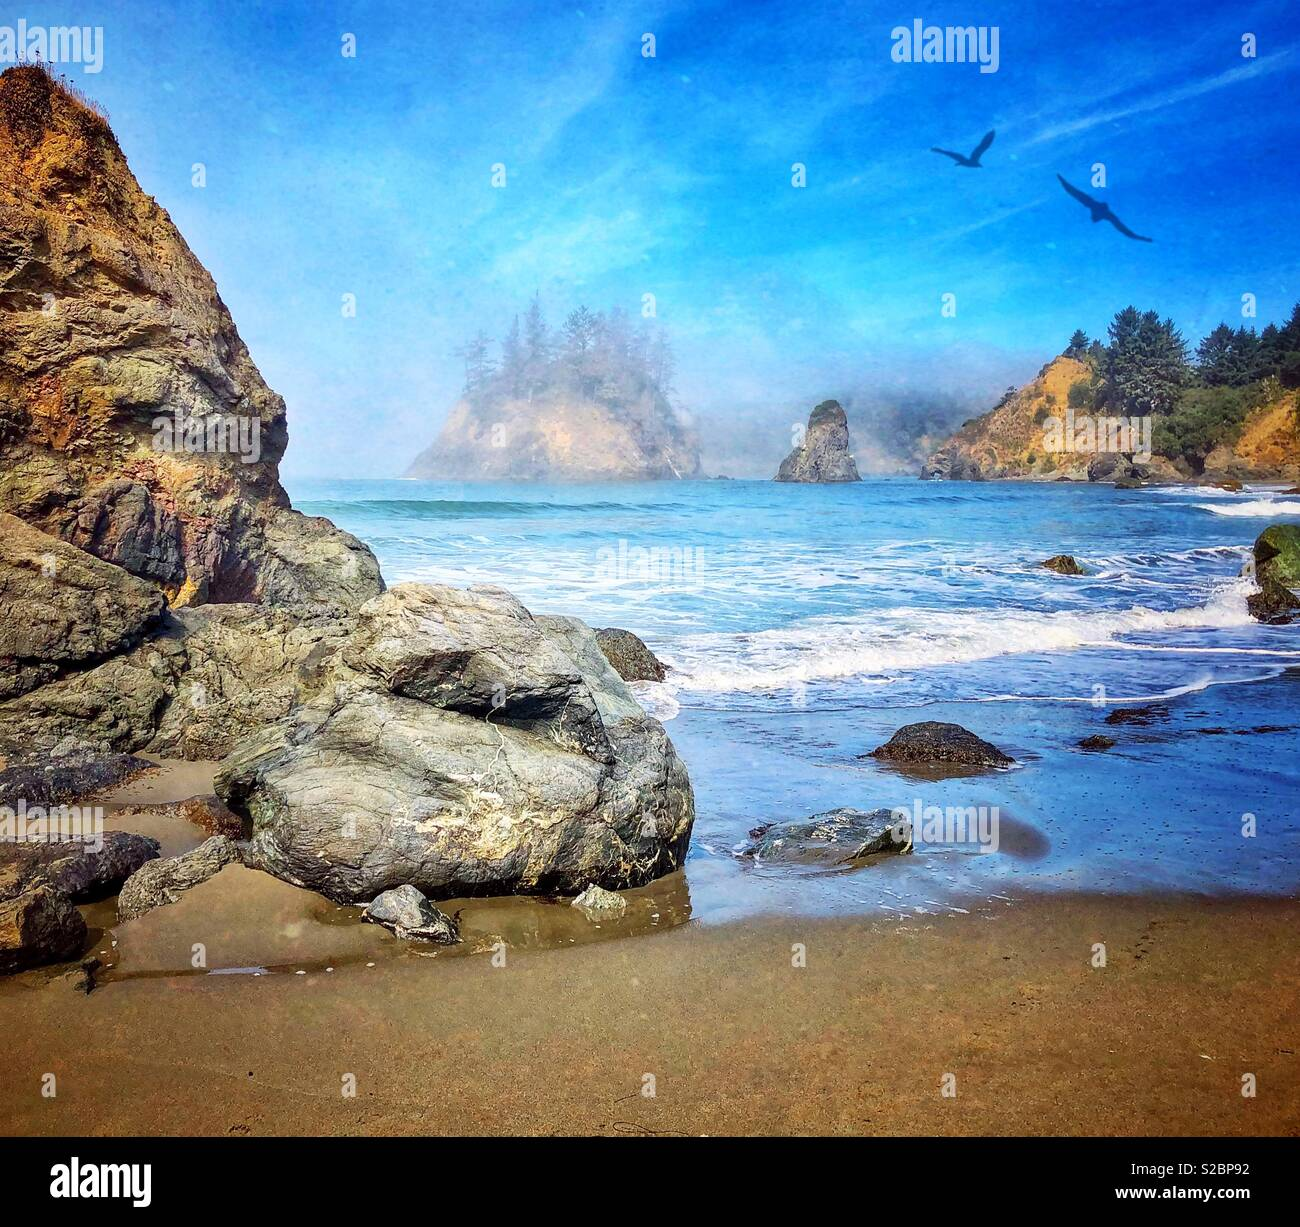 Trinidad Beach - Stock Image